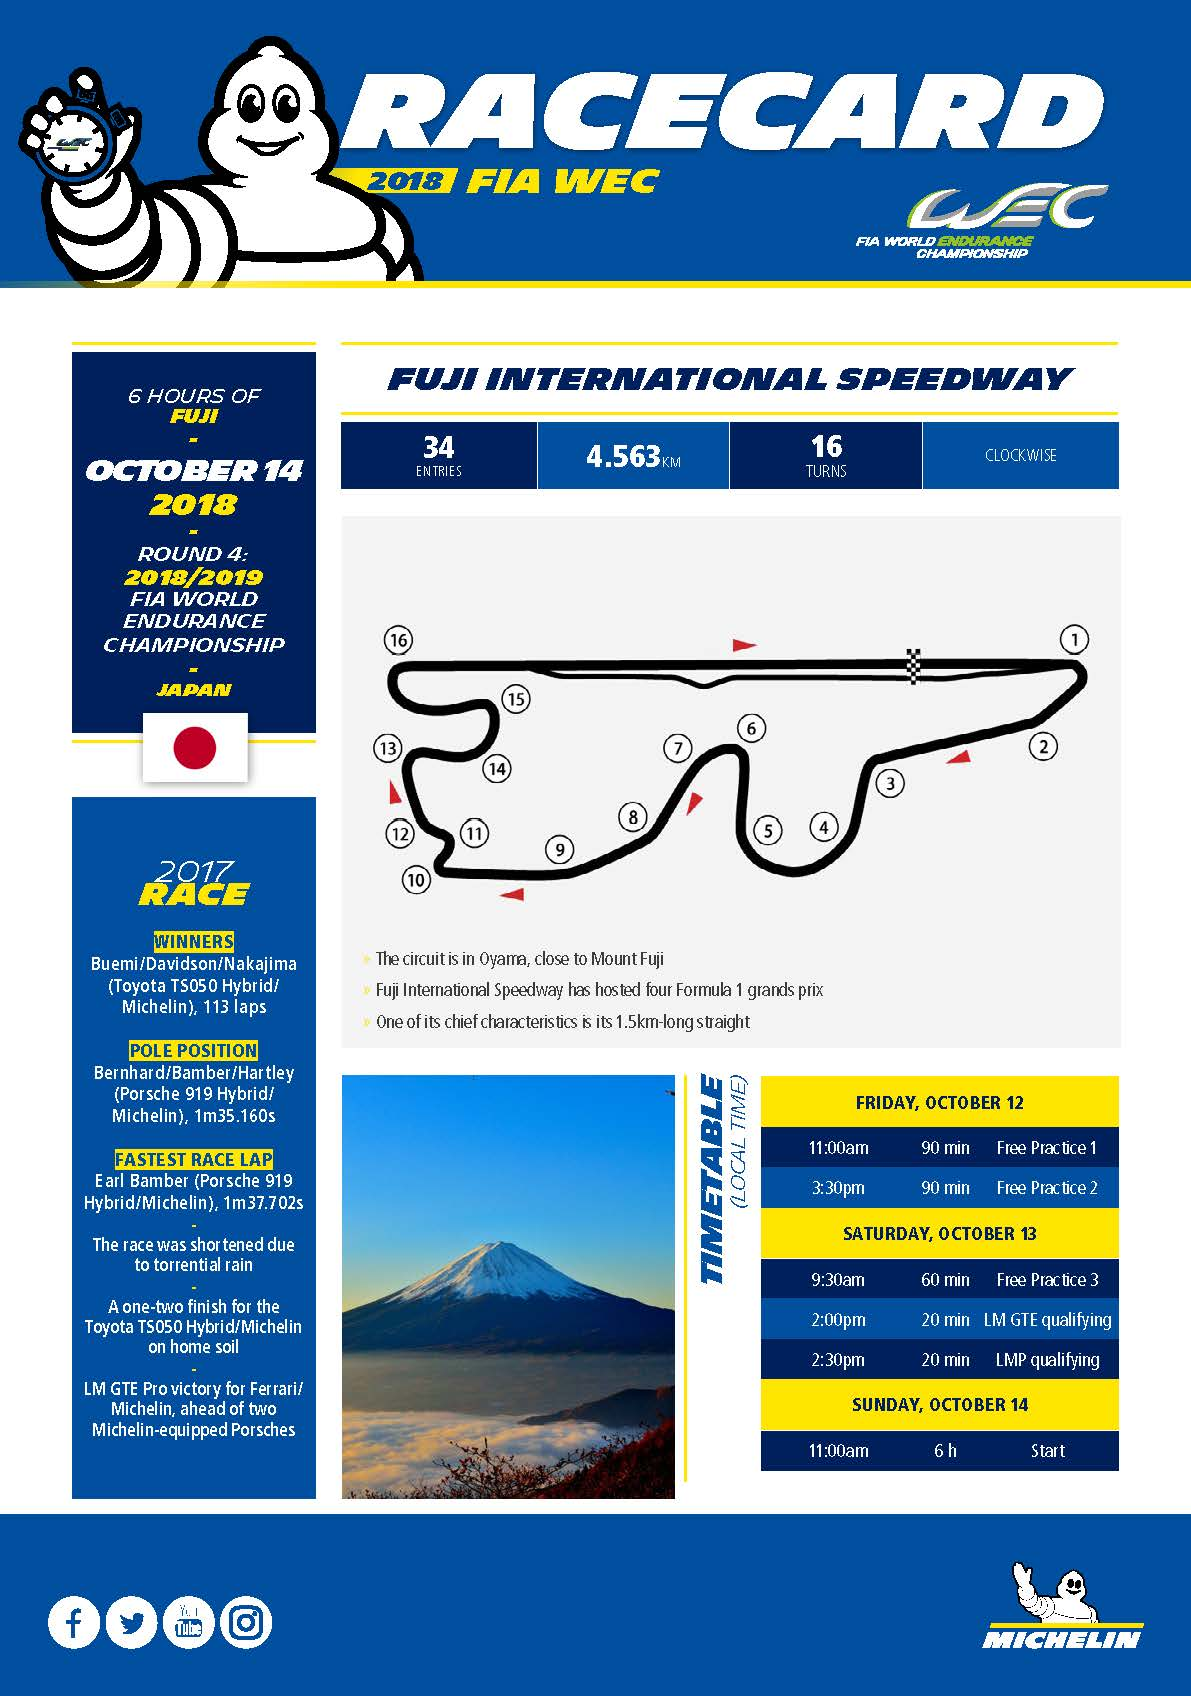 Michelin_Racecard_WEC_Fuji_2018_UK_V3_Page_1